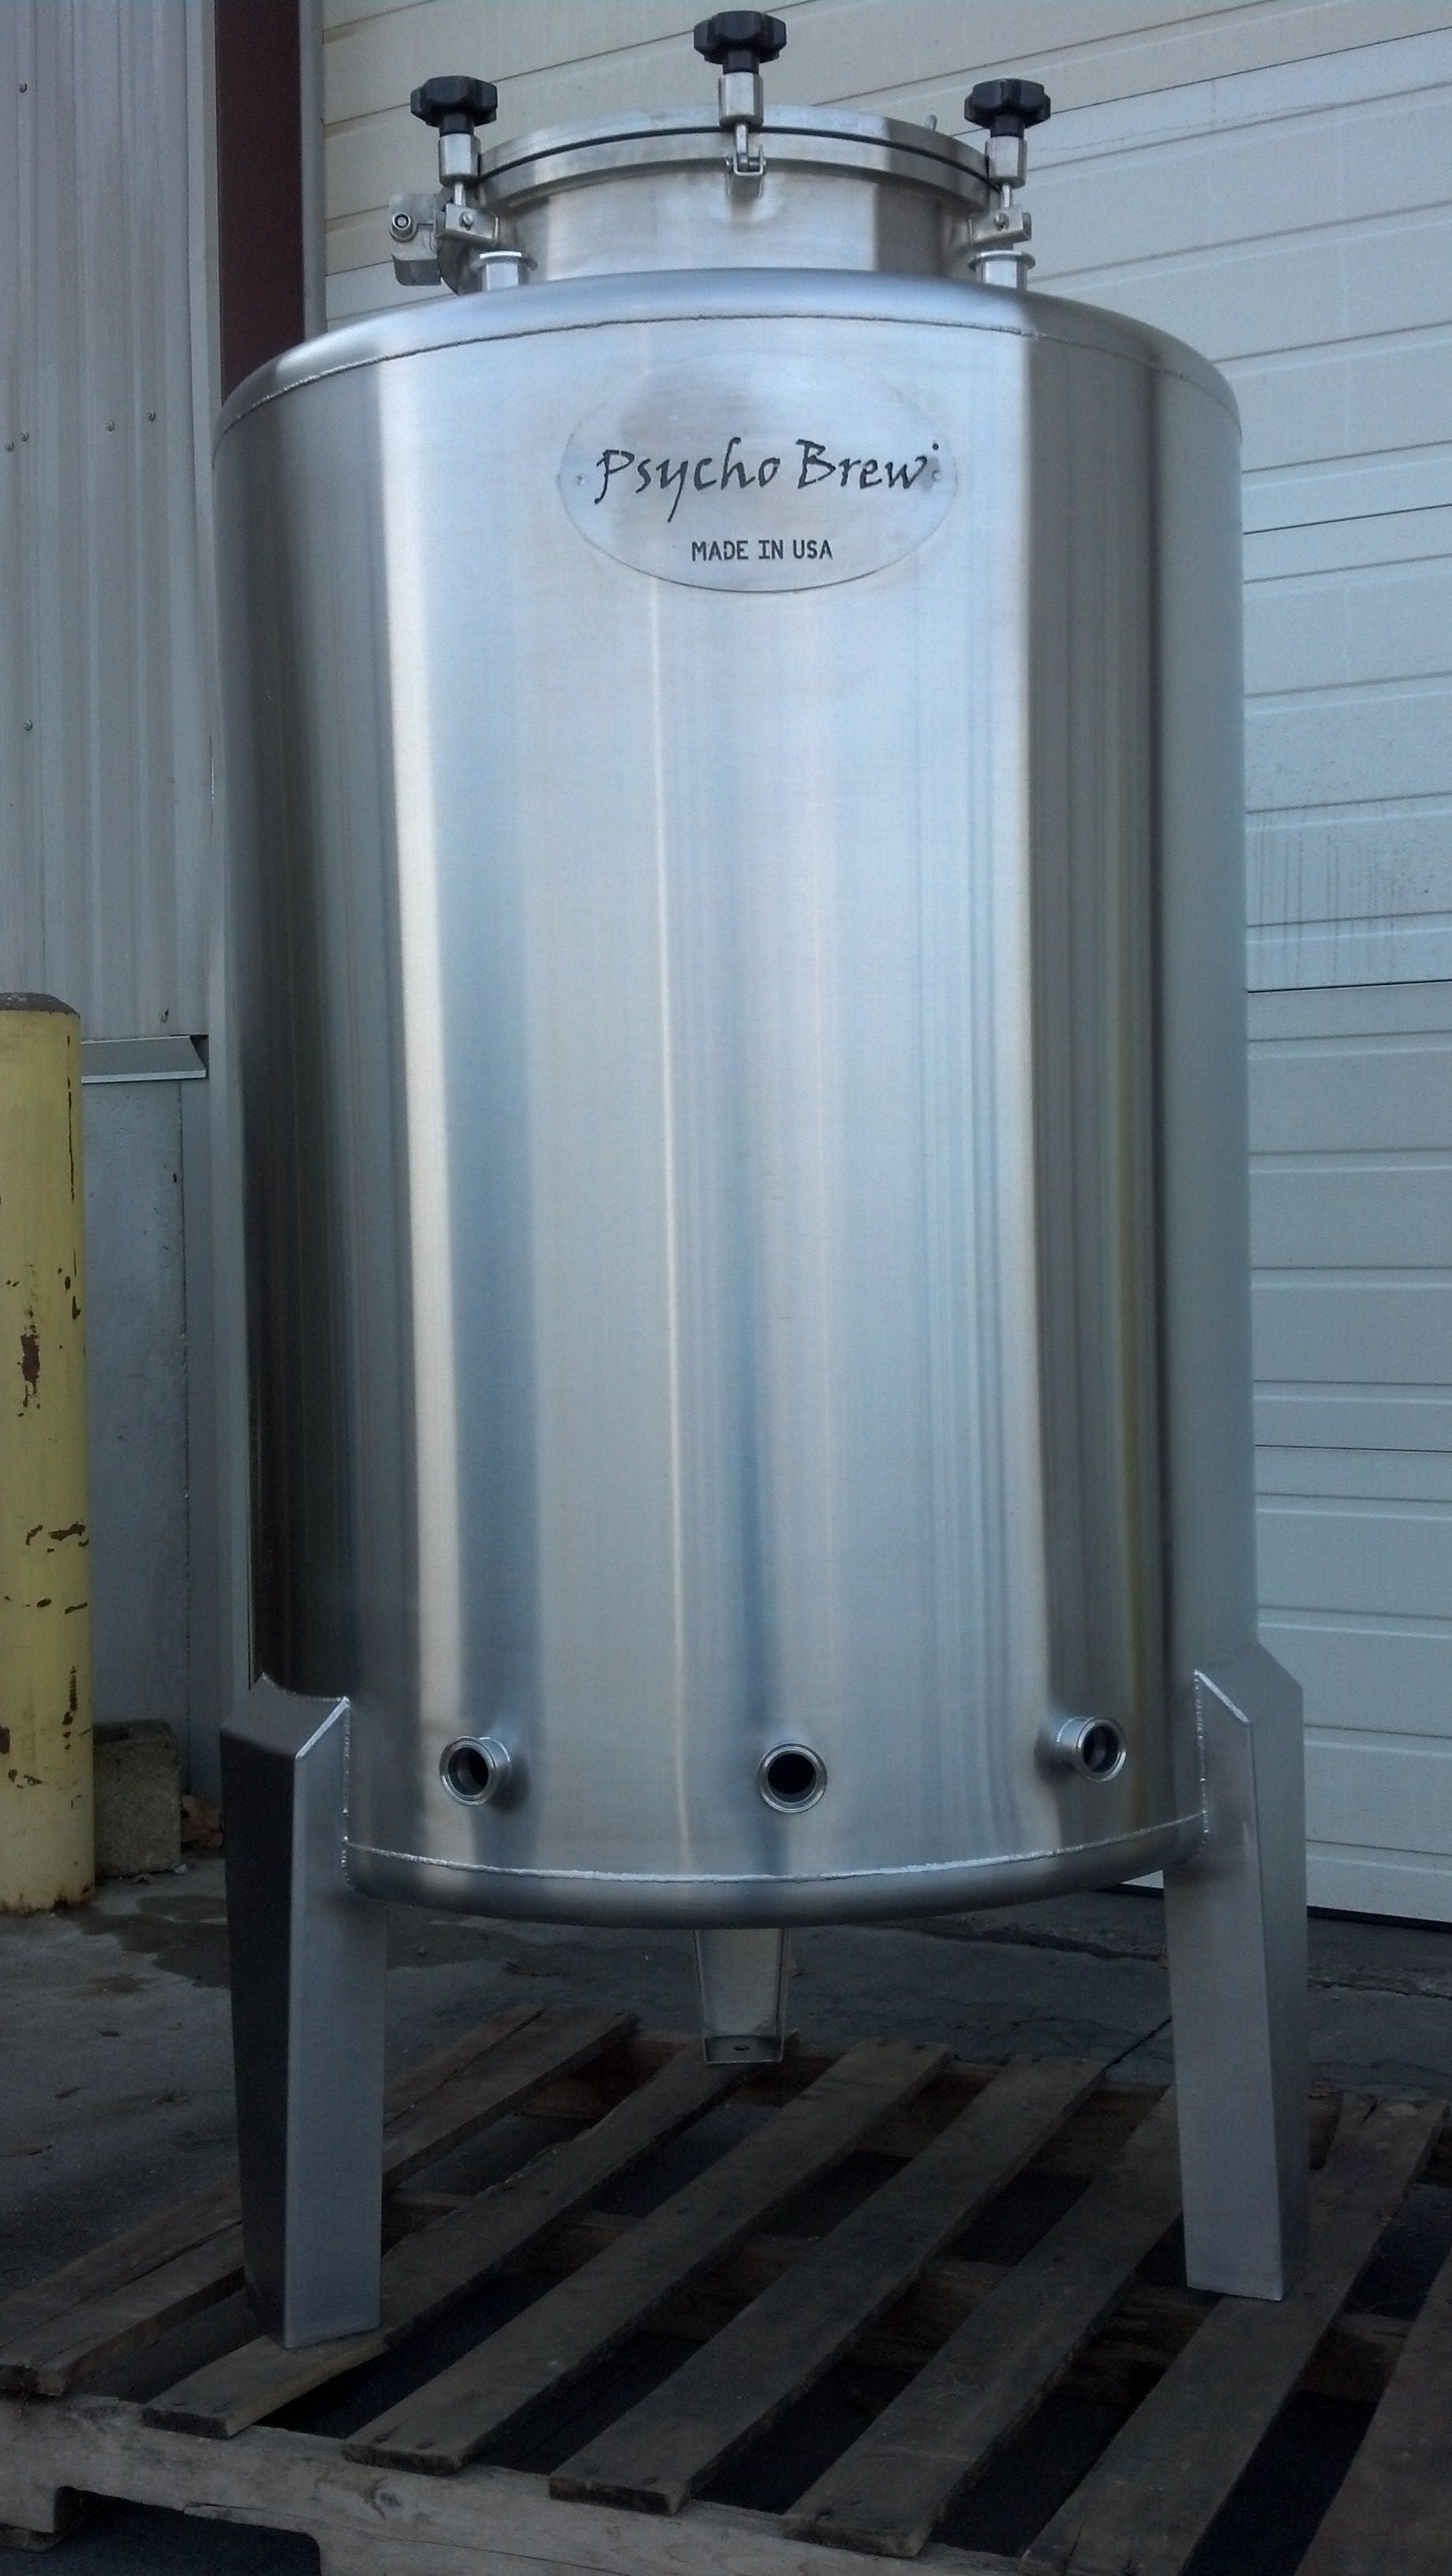 4 bbl Single Walled Brite Tank Bright tank sold by Psycho Brew